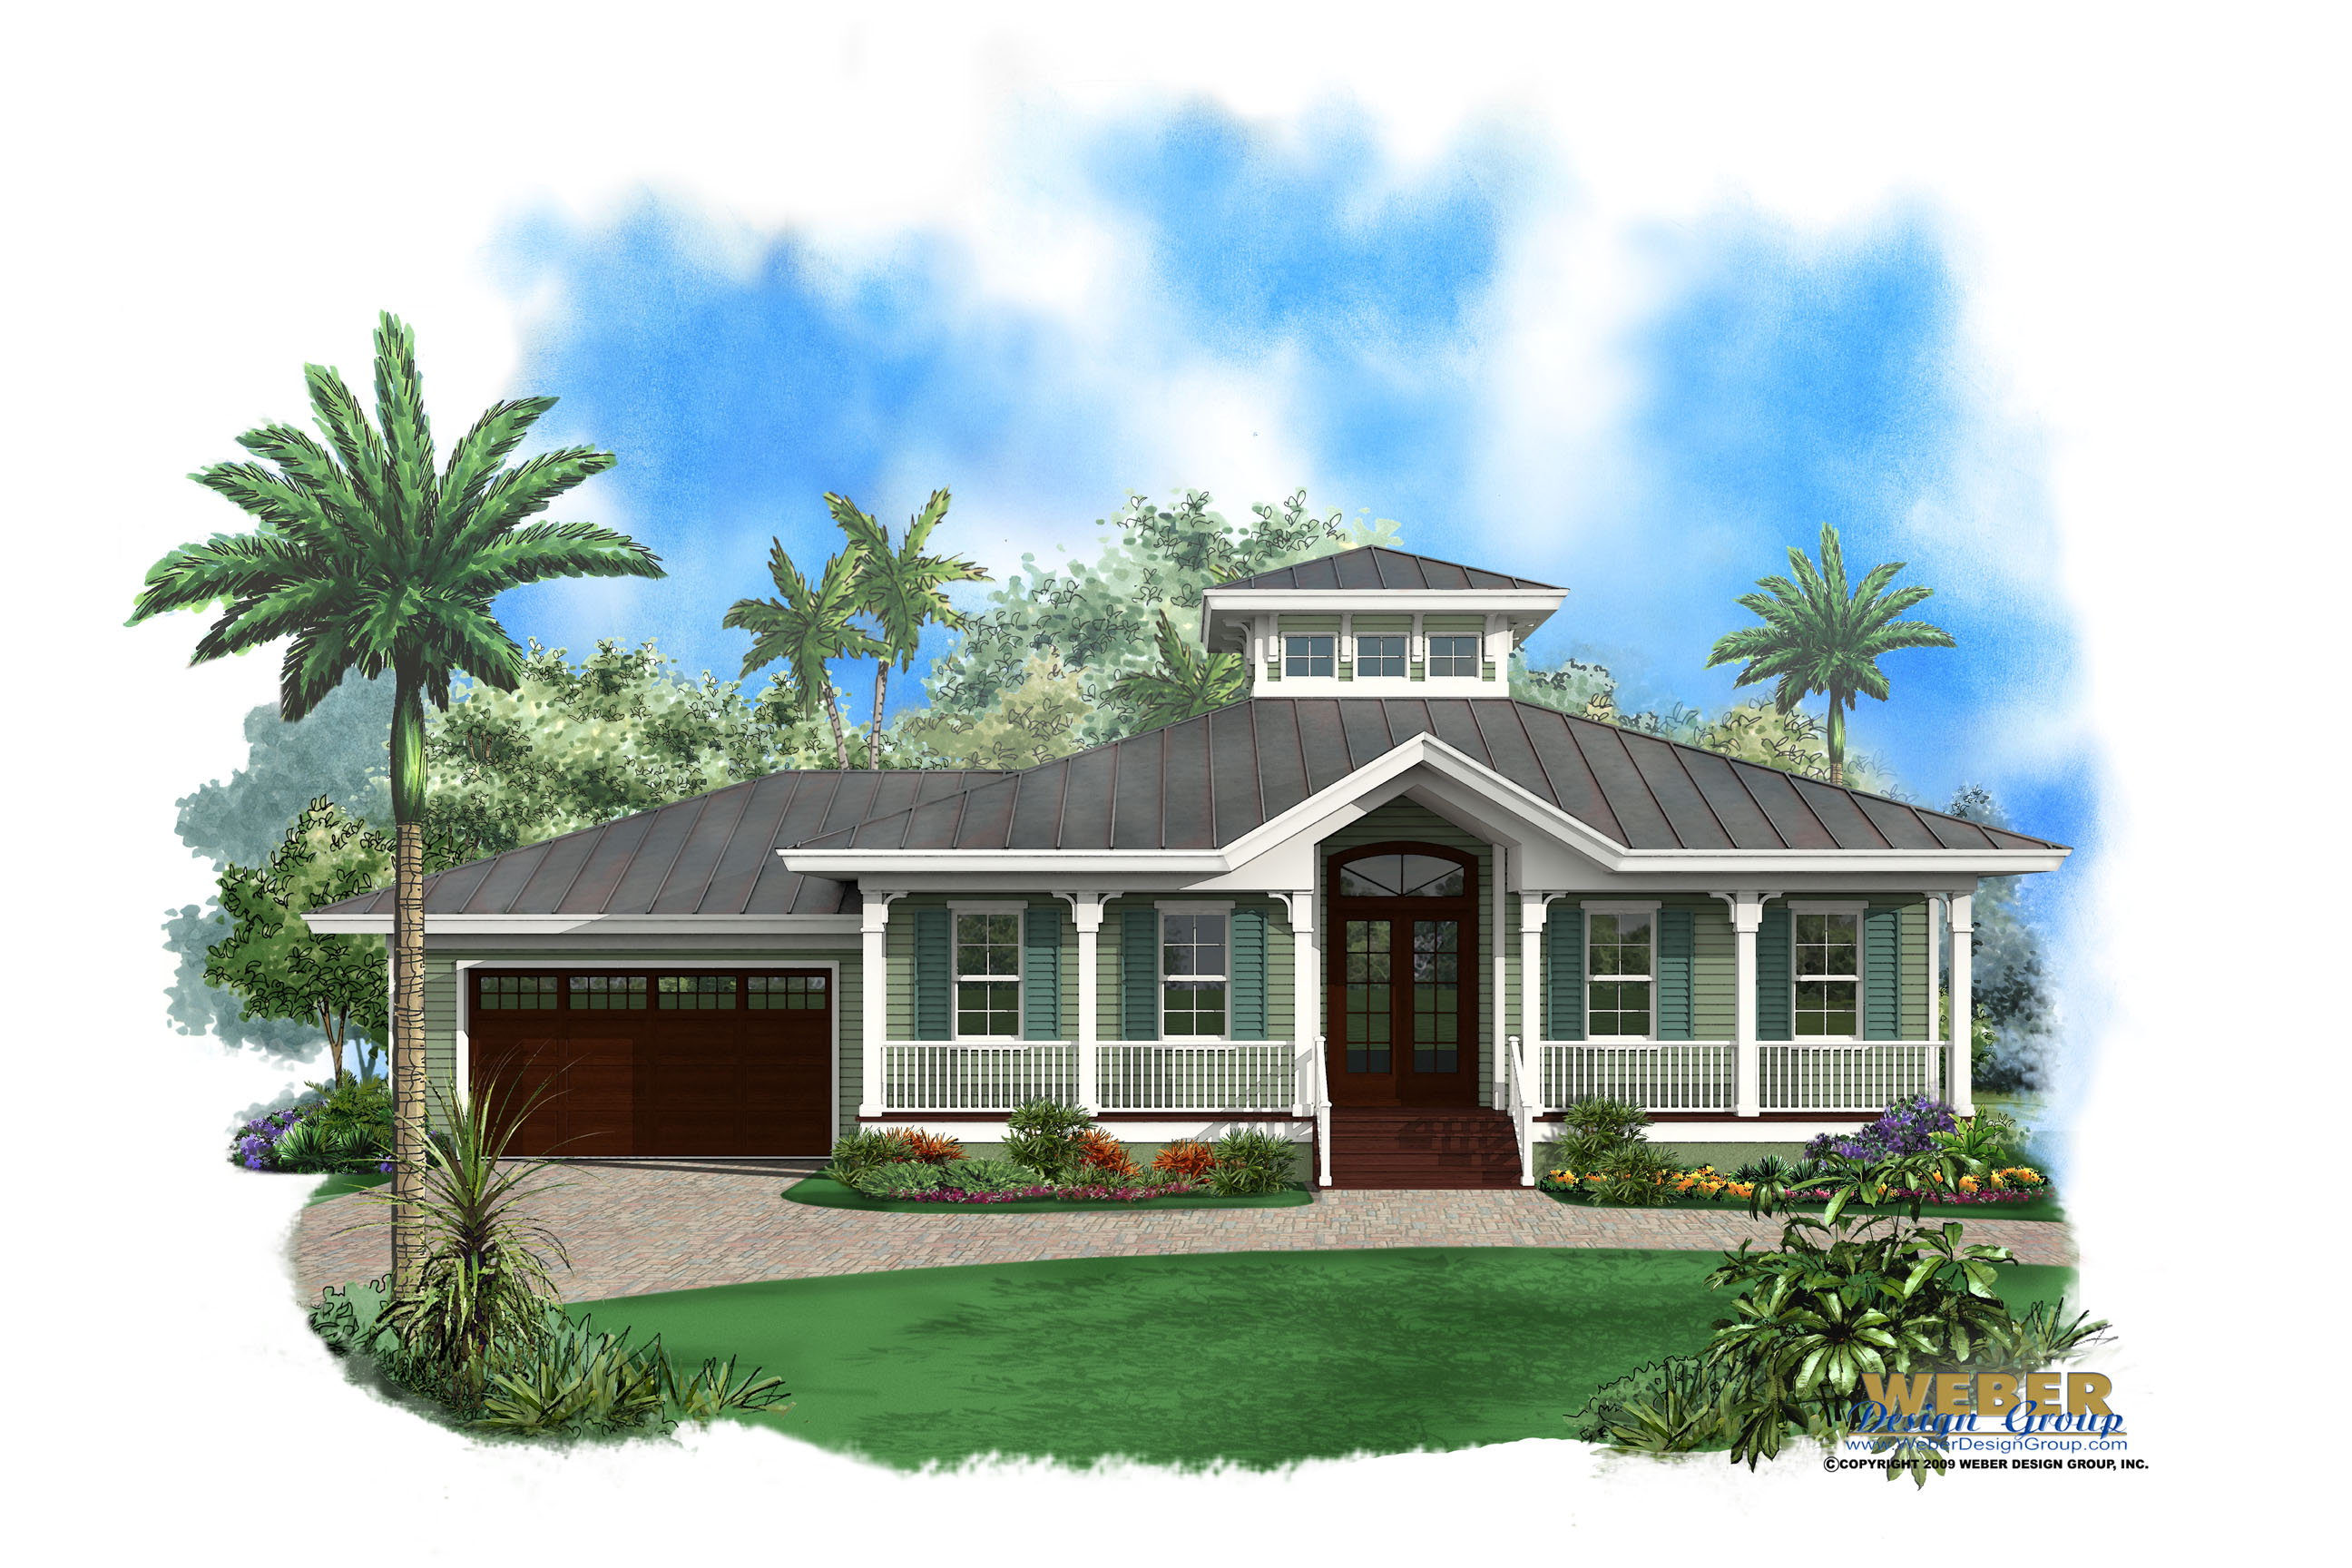 Ambergris Cay House Plan Part 13